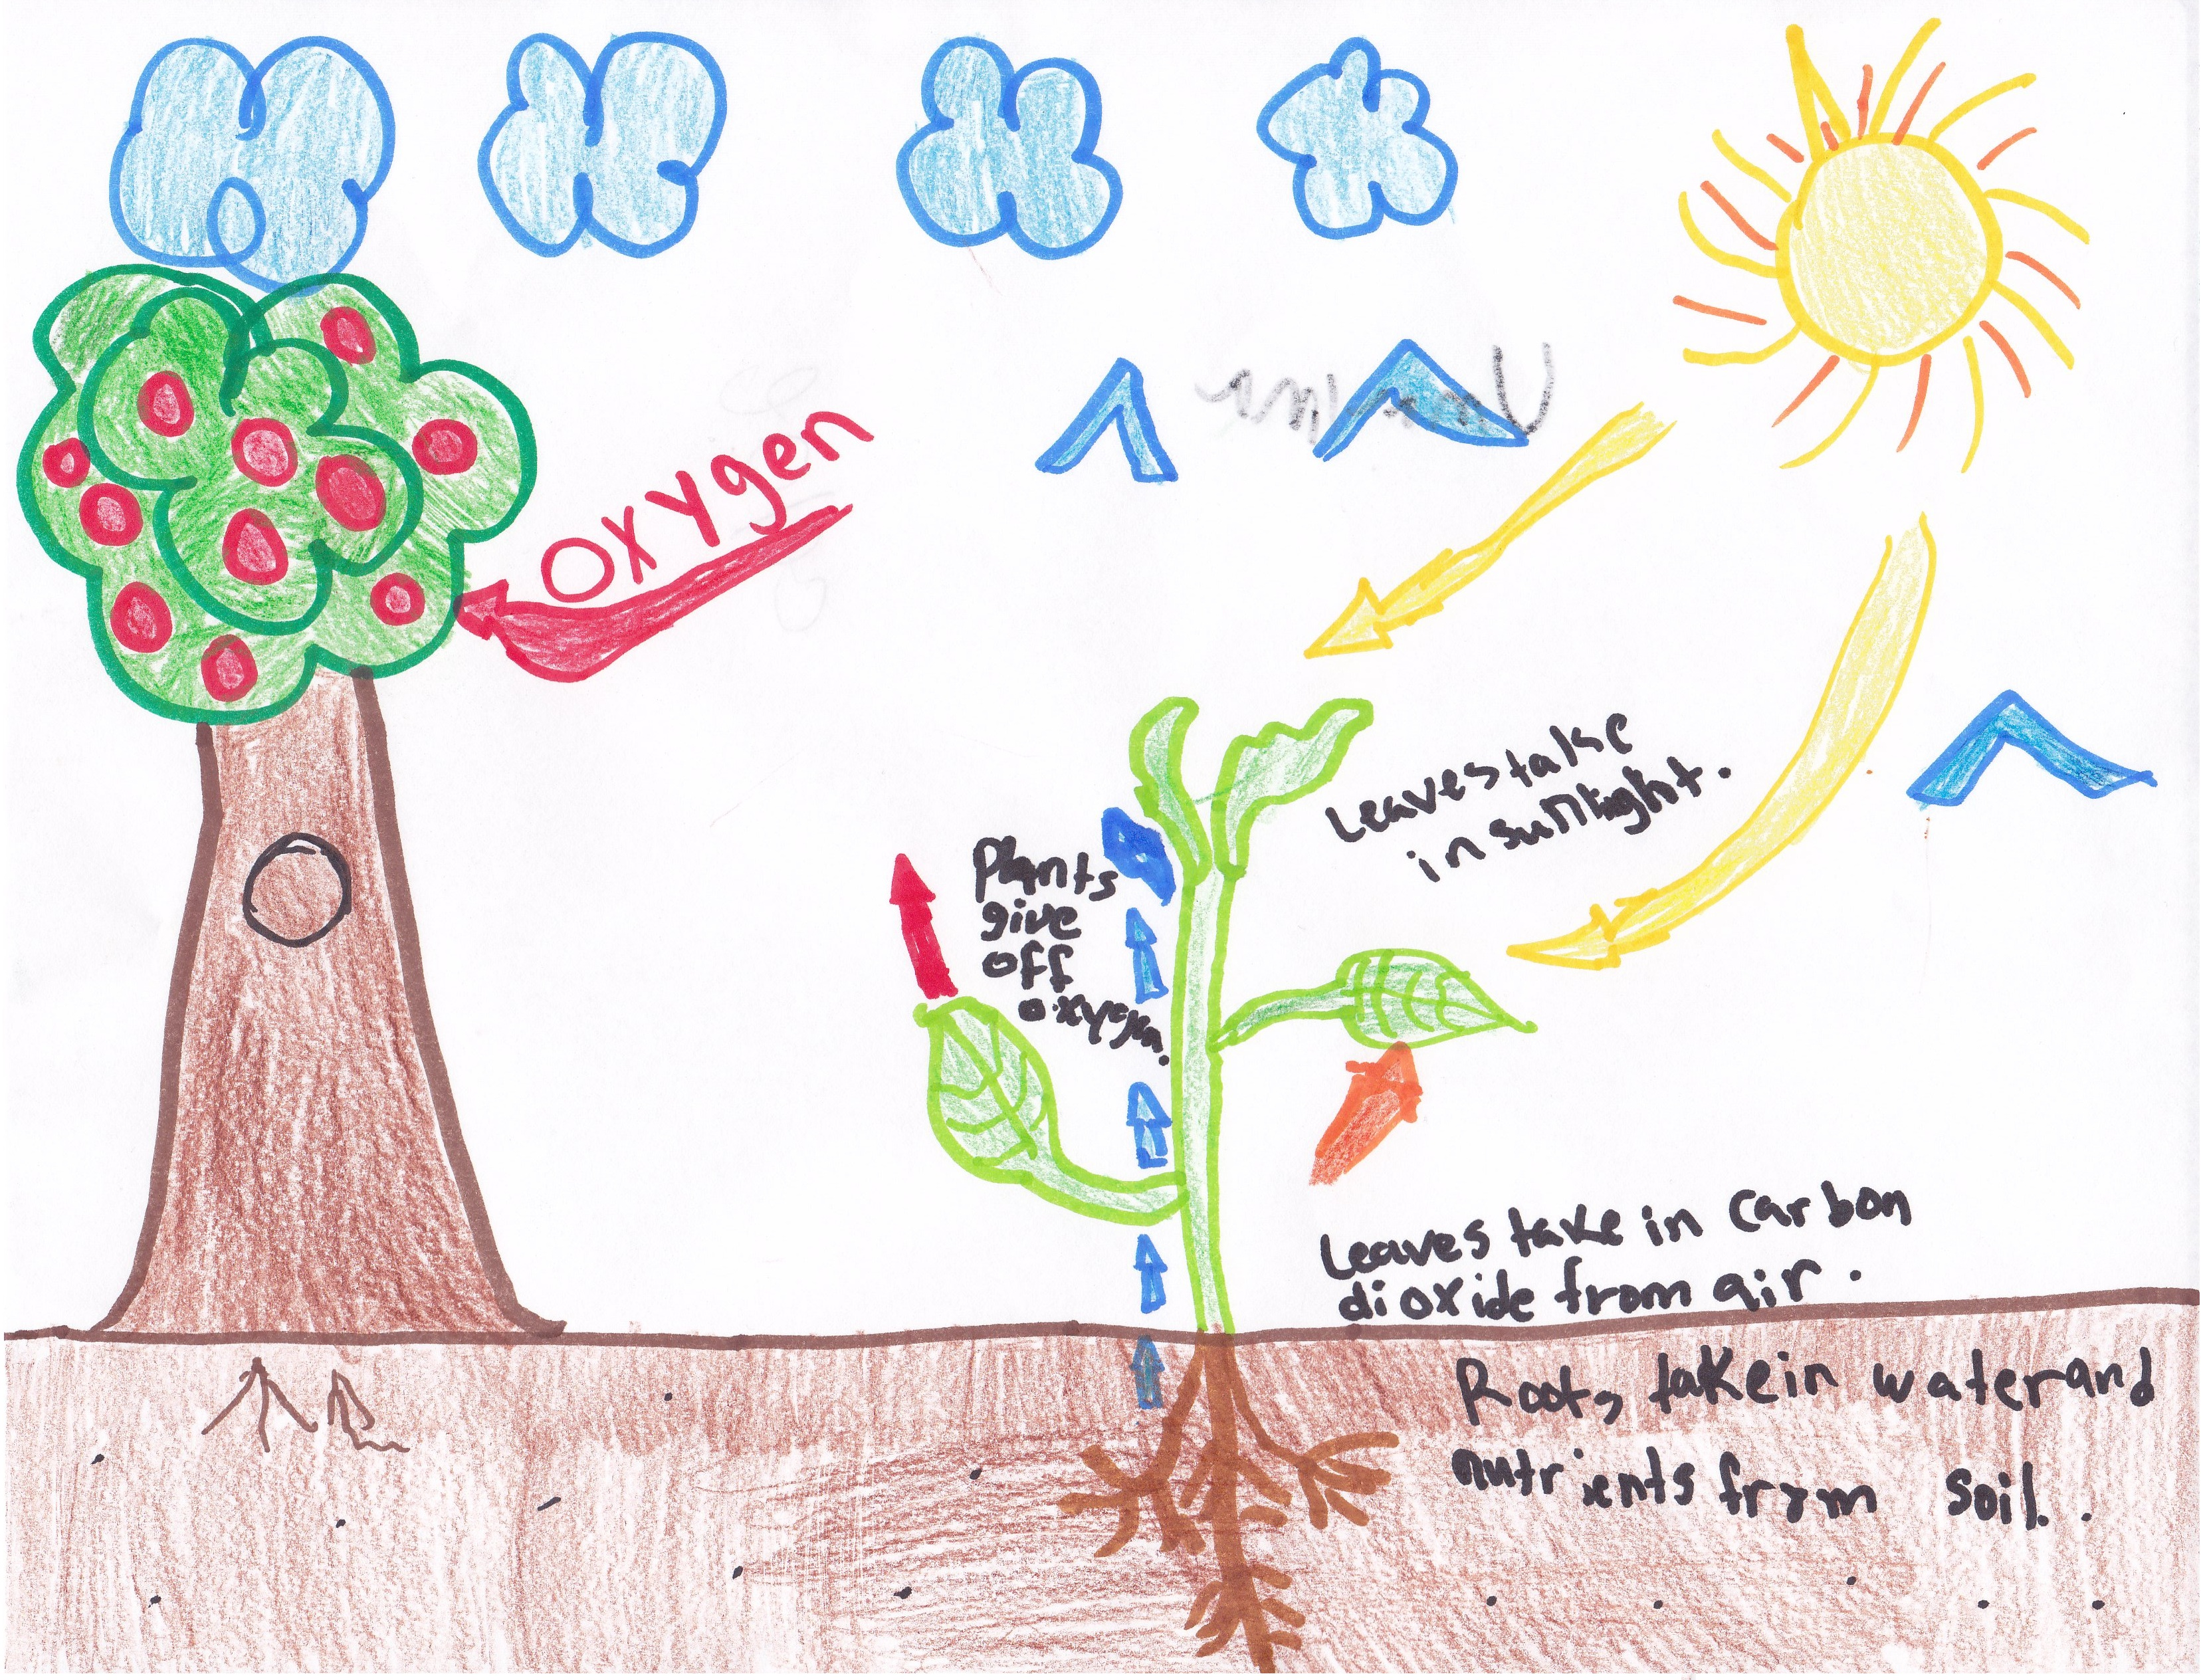 photosynthesis process diagram for 5th grade wiring led tail lights 4th mrs moskal